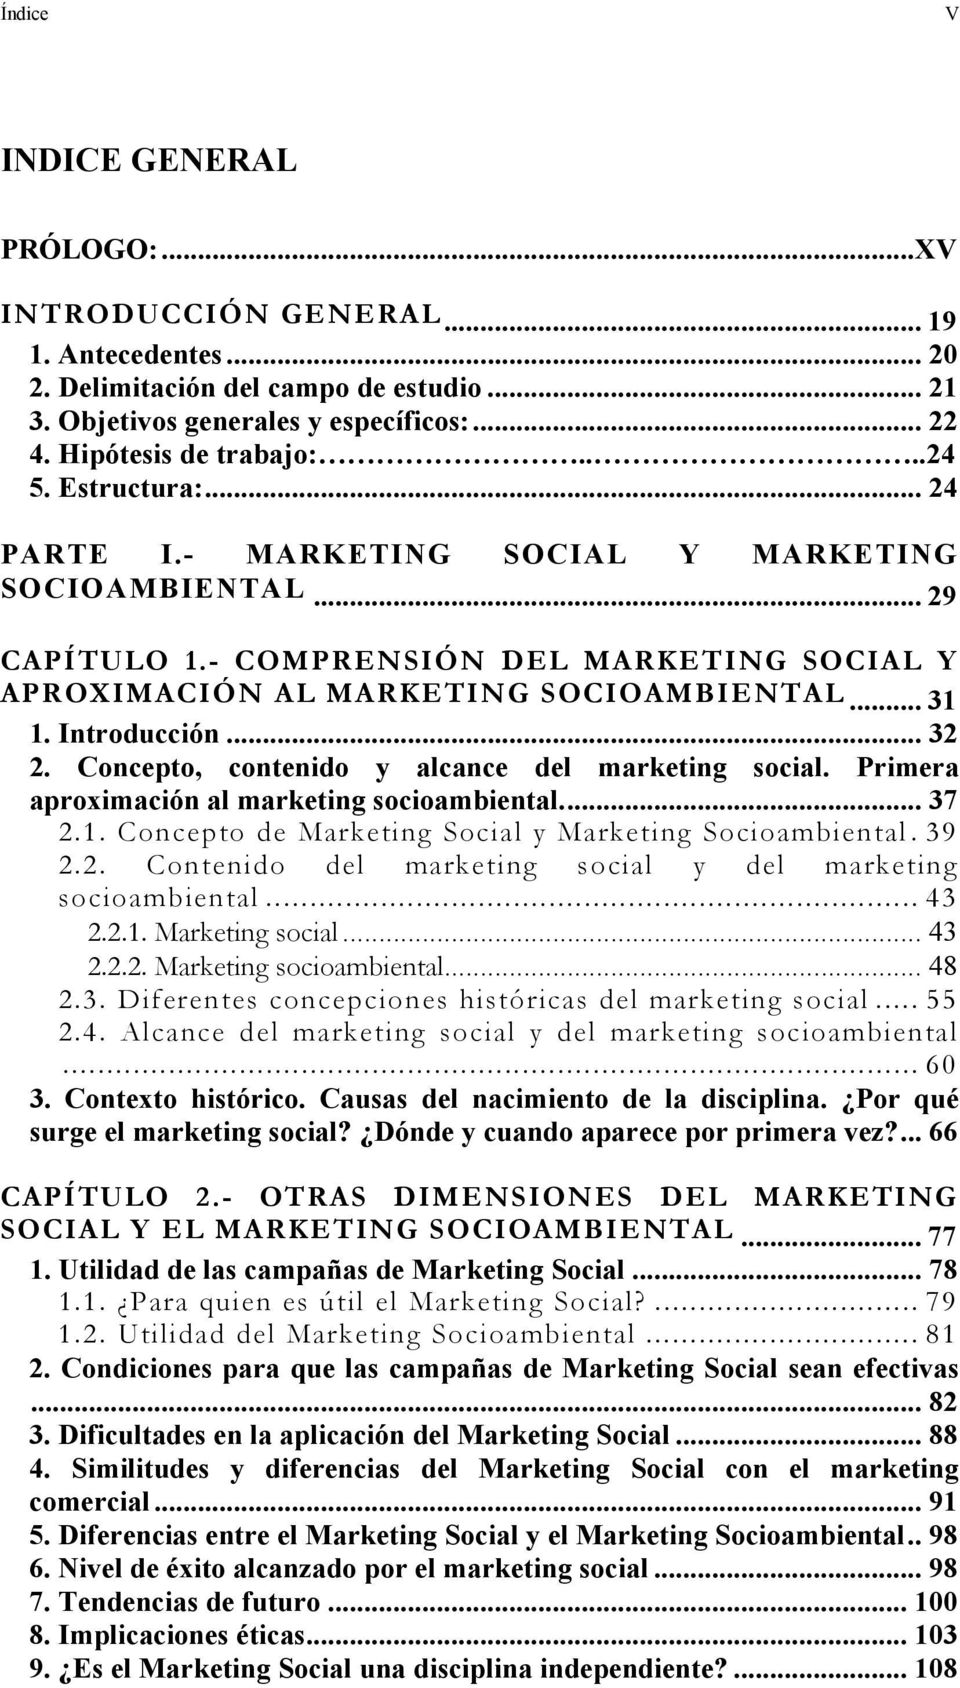 .. 32 2. Concepto, contenido y alcance del marketing social. Primera aproximación al marketing socioambiental... 37 2.1. Concepto de Marketing Social y Marketing Socioambiental. 39 2.2. Contenido del marketing social y del marketing socioambiental.